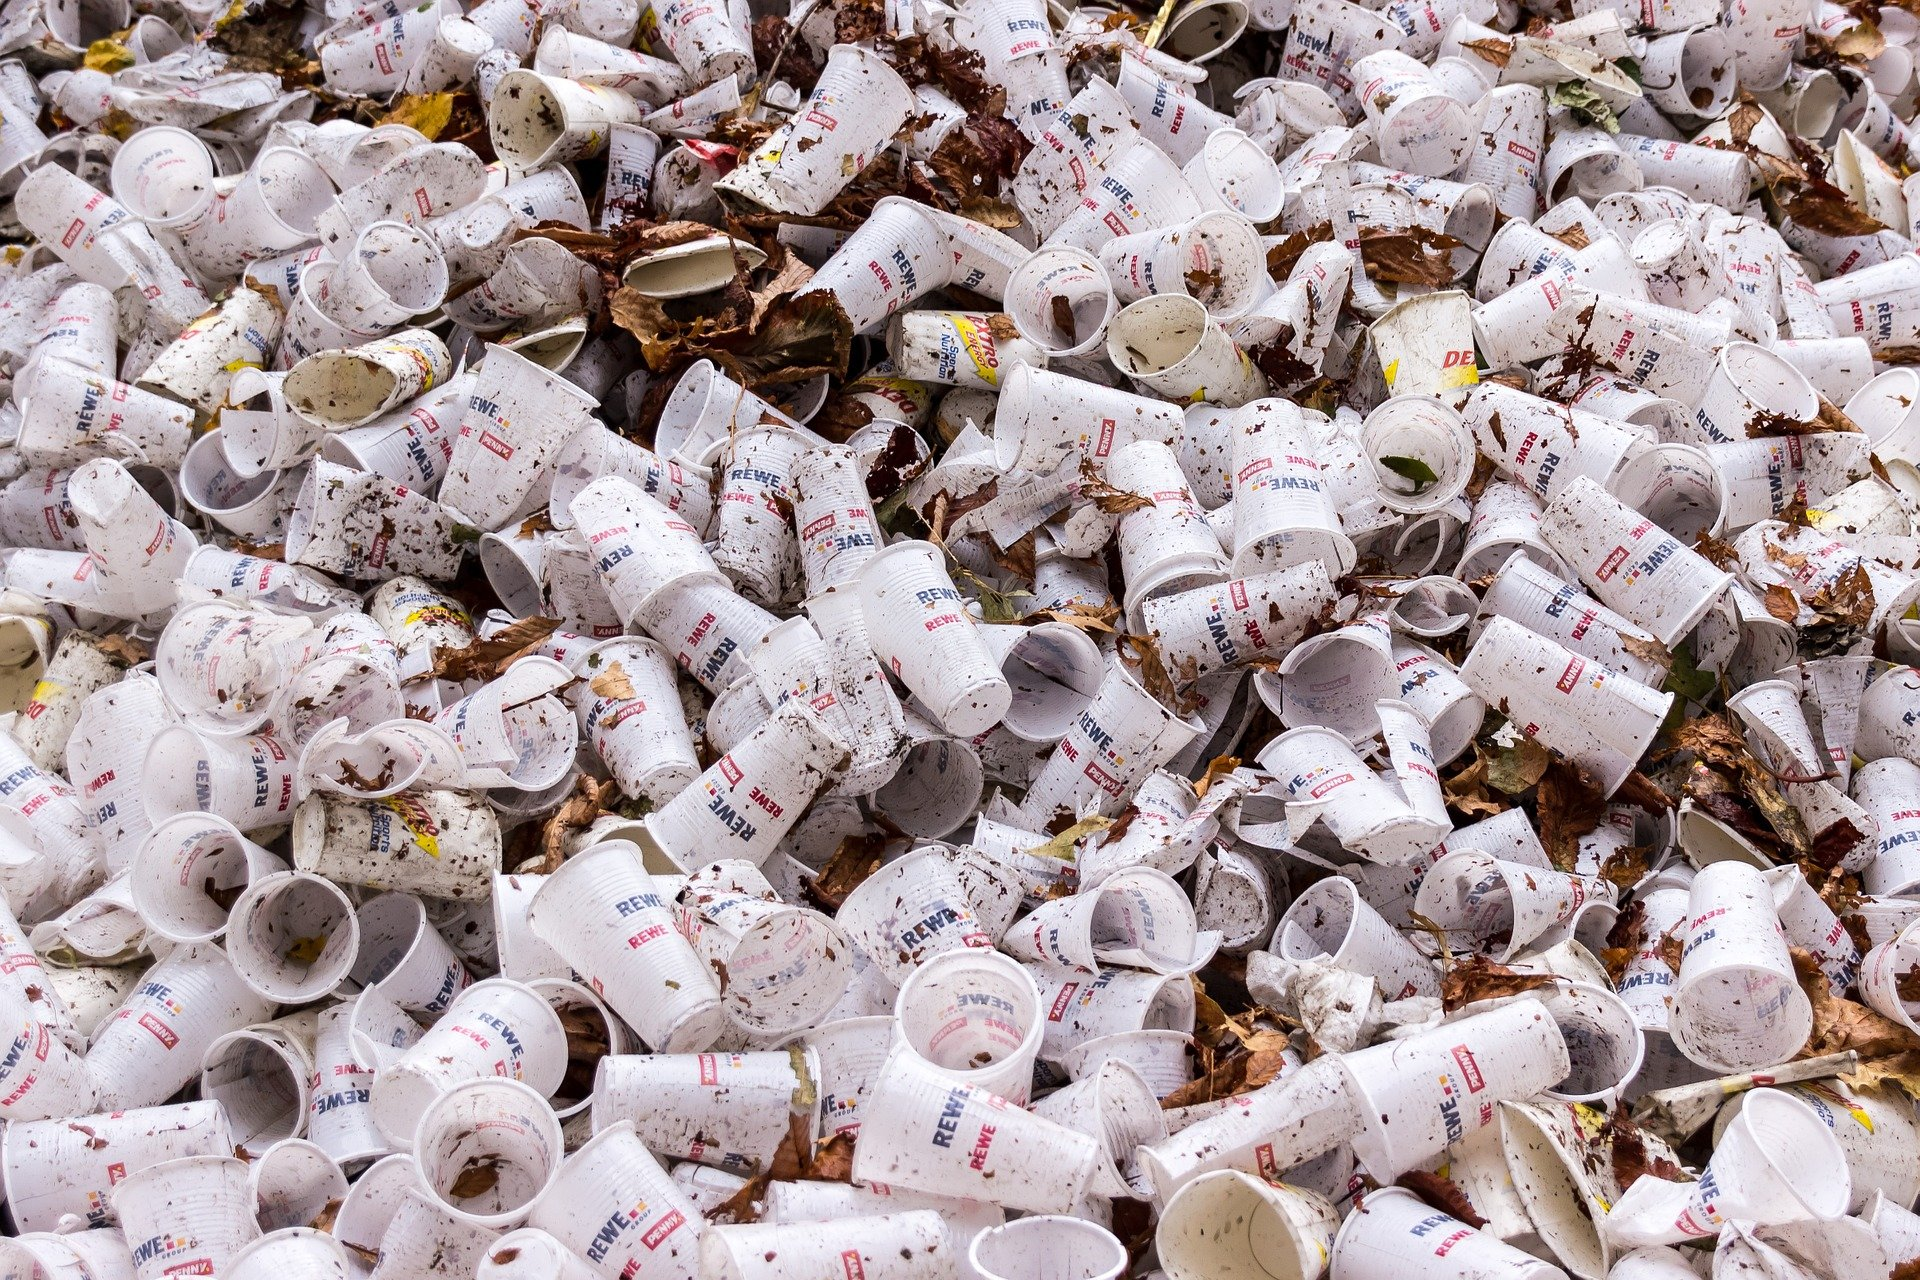 Researcher tackles growing plastic waste